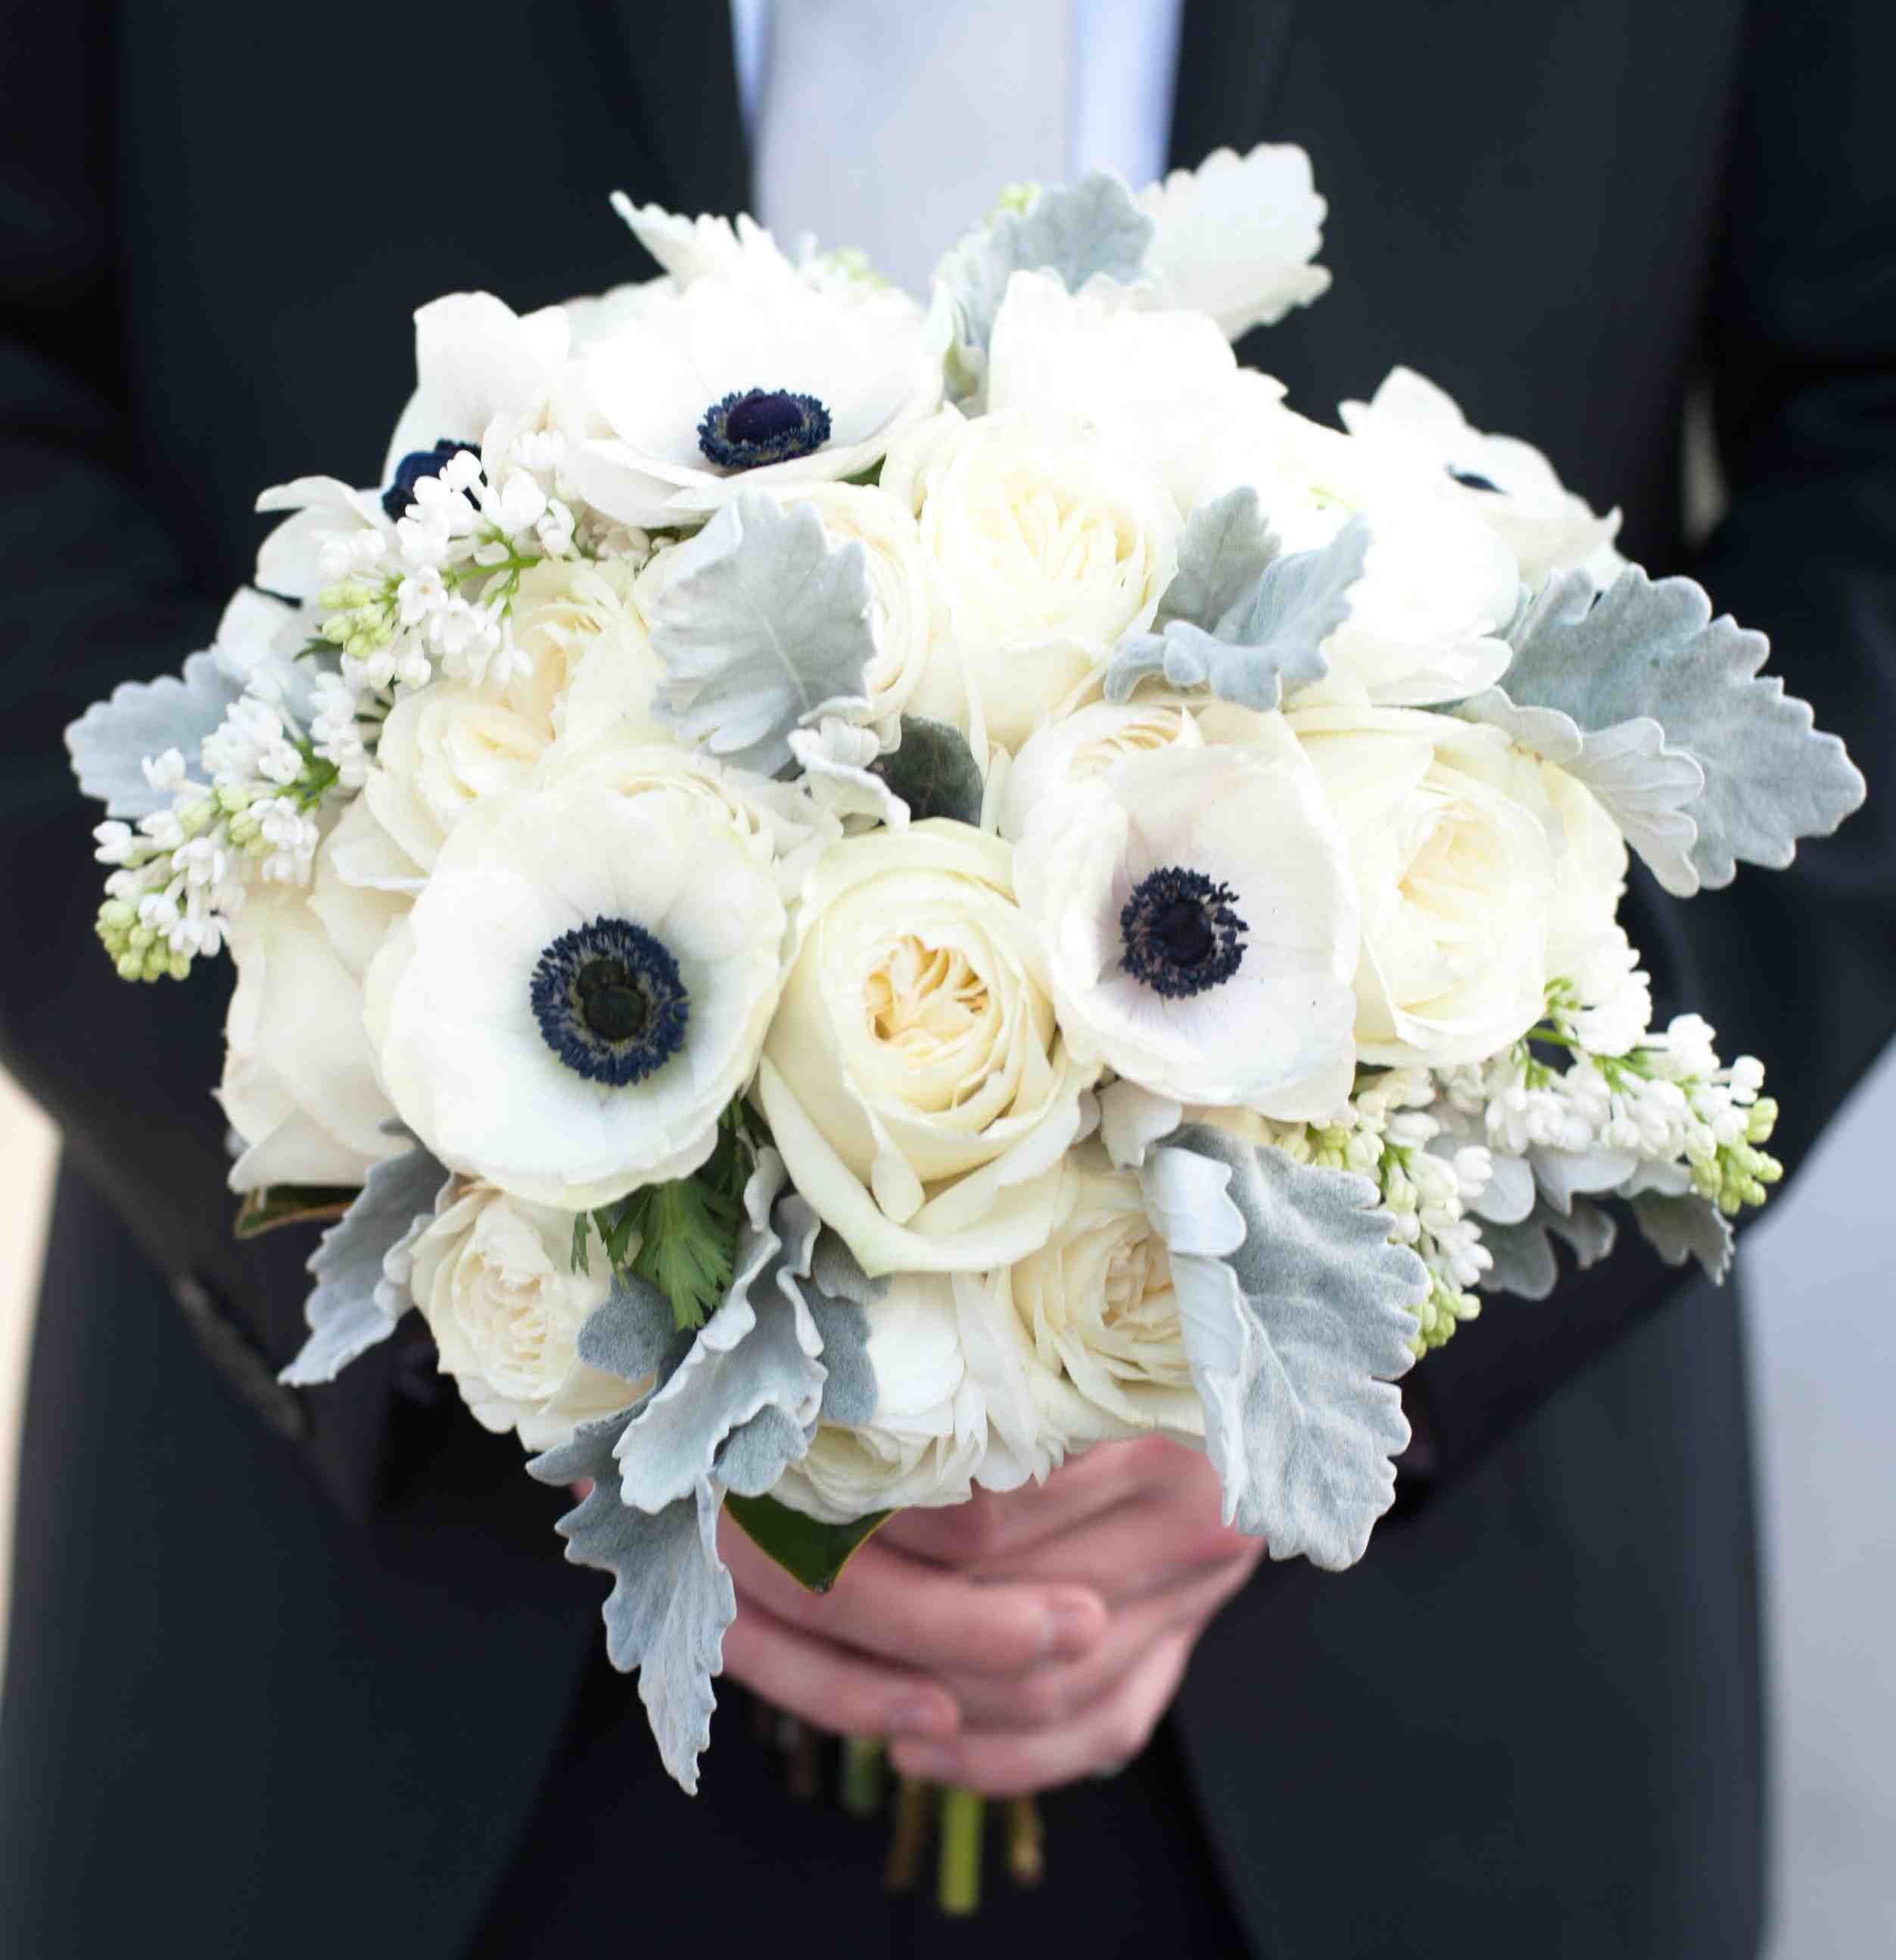 Wedding Trend Using Anemone Flowers In Decor Blue Wedding